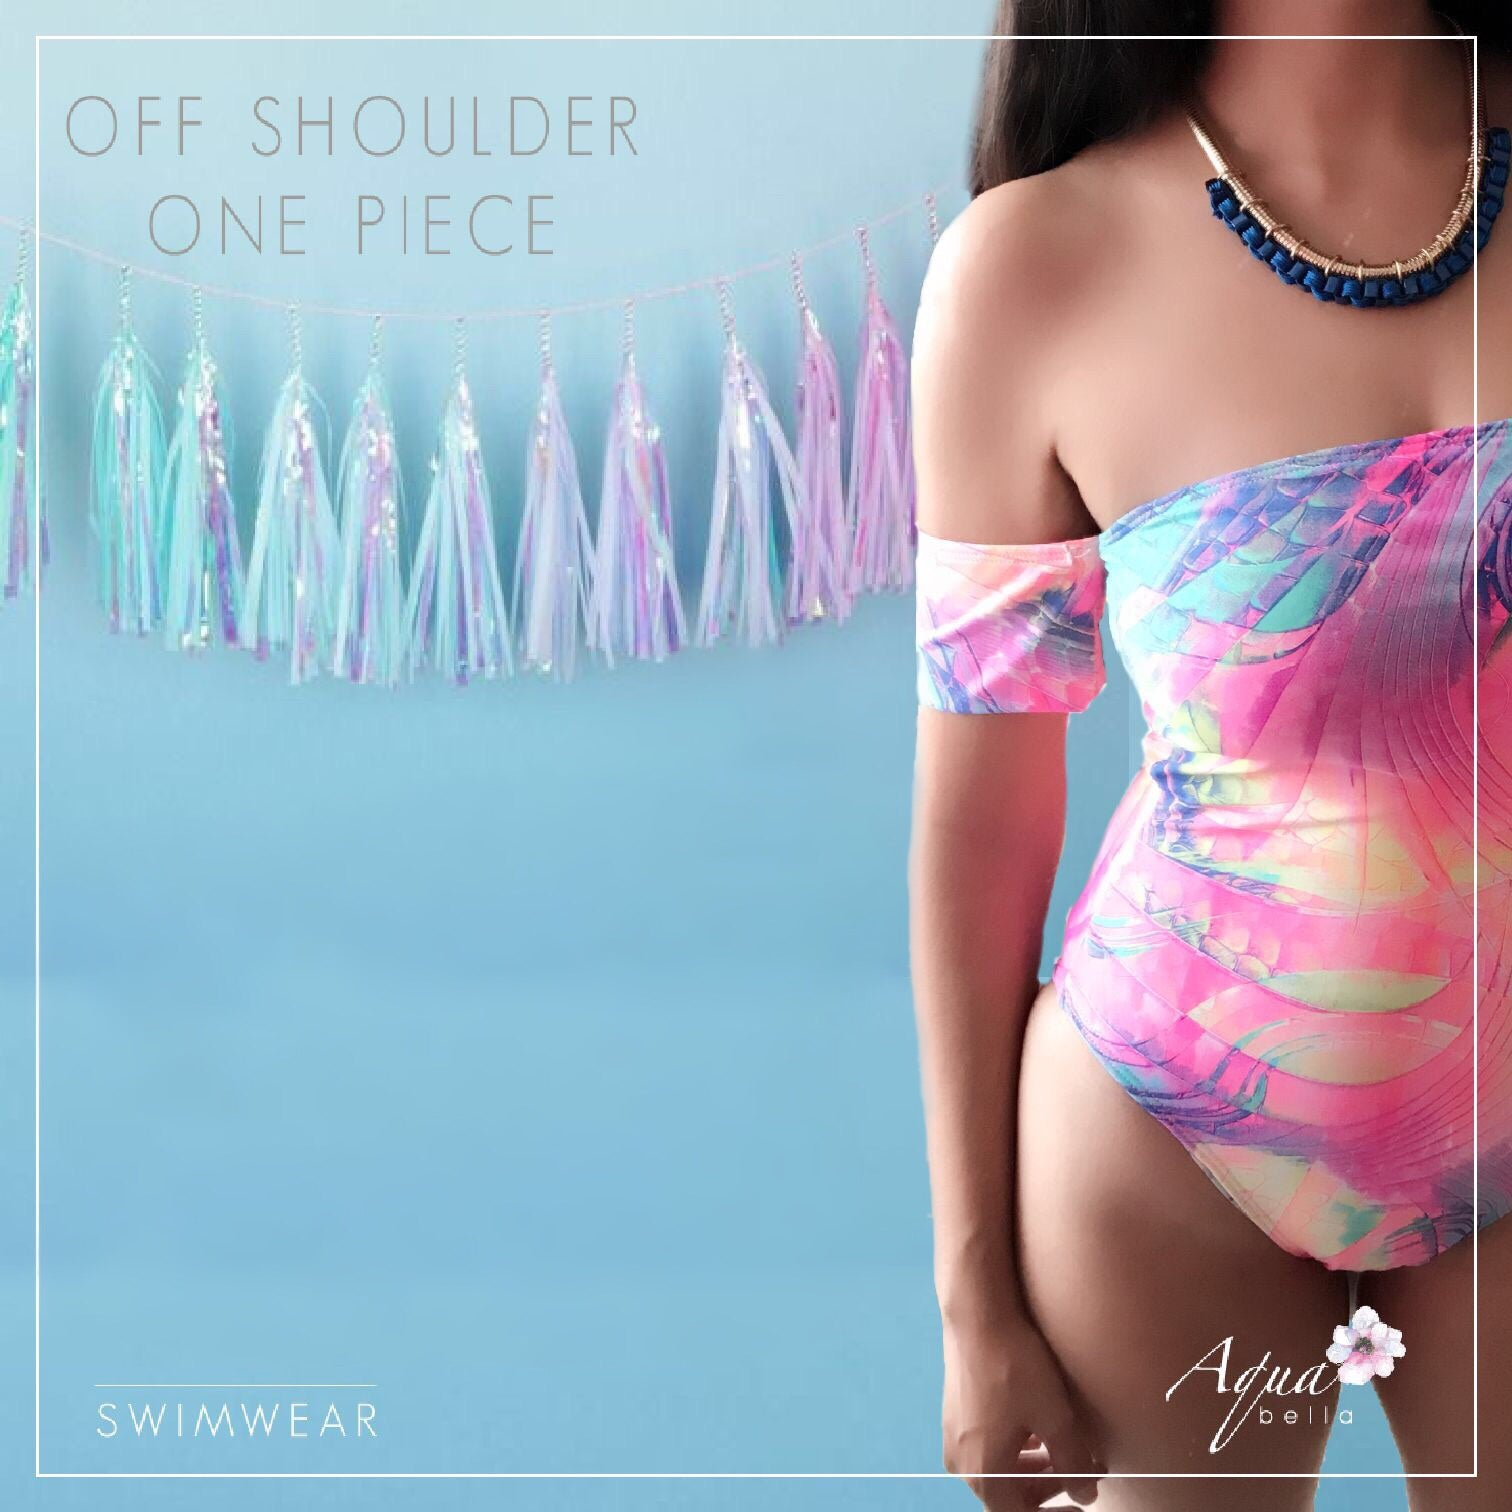 Body off shoulders - Aqua Bella